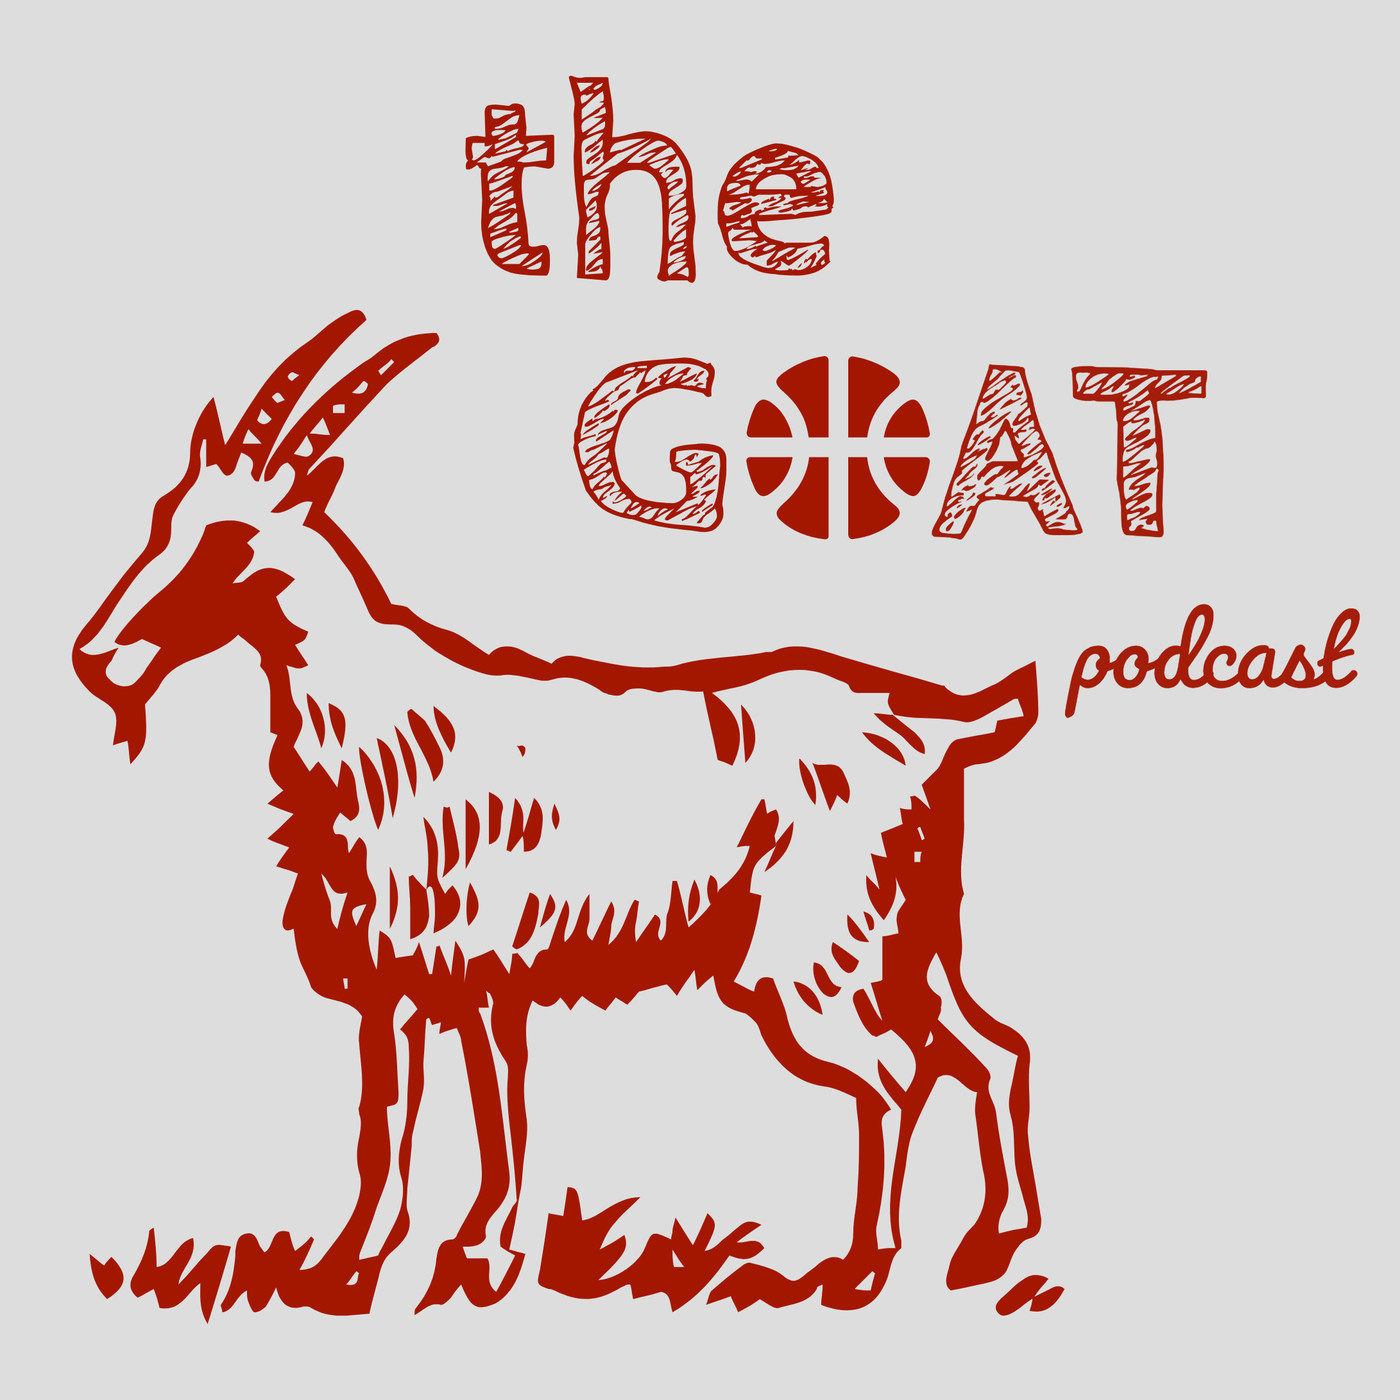 the GOAT - Ep. 07 pt. 2 - As Relíquias do Oeste